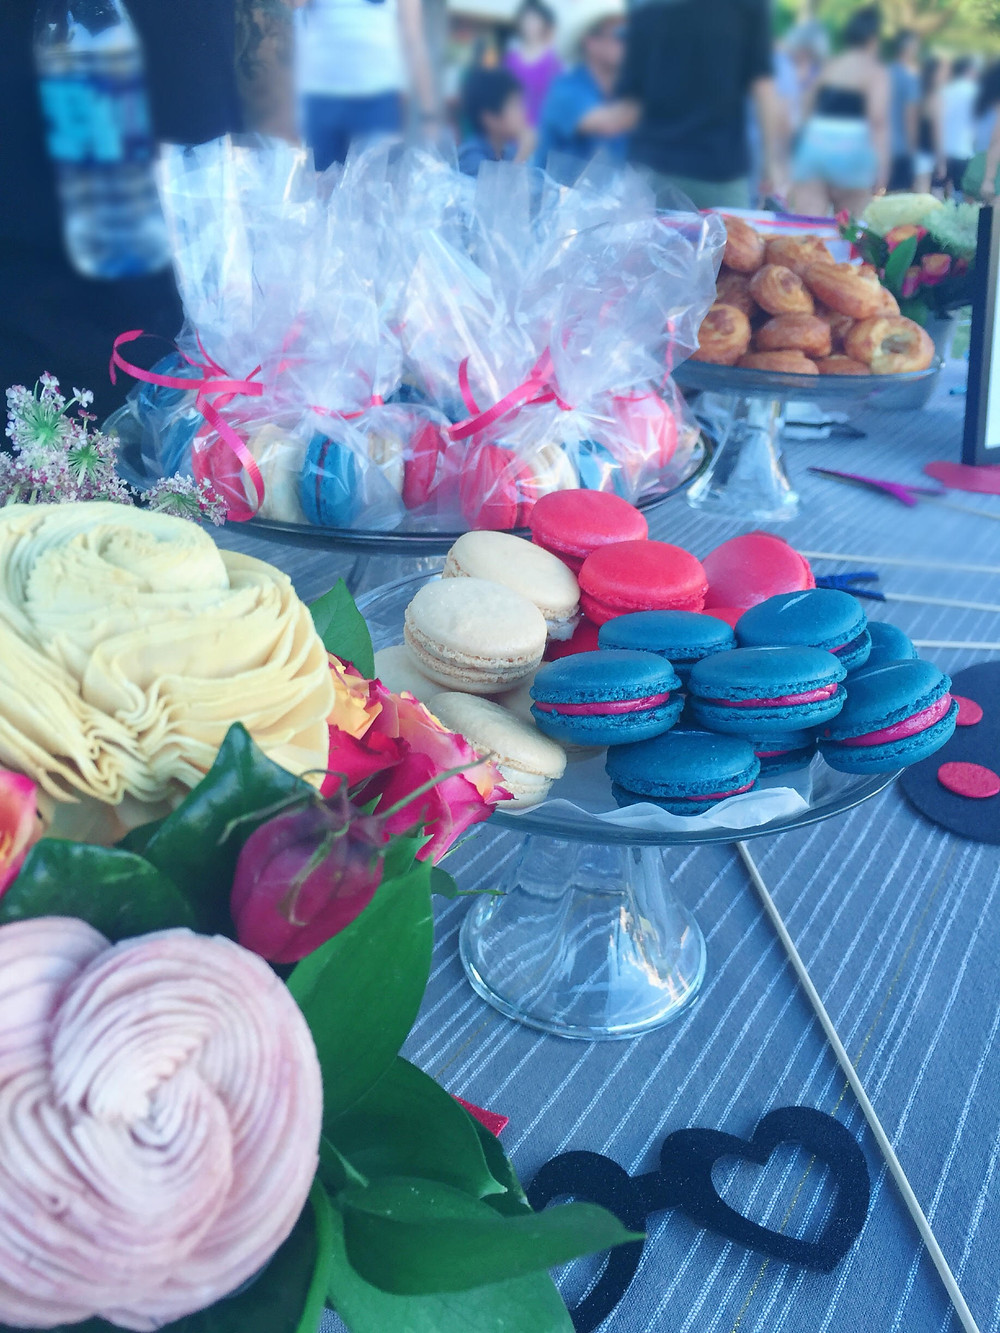 The King Florist flowers and our yummy treats were a big hit!